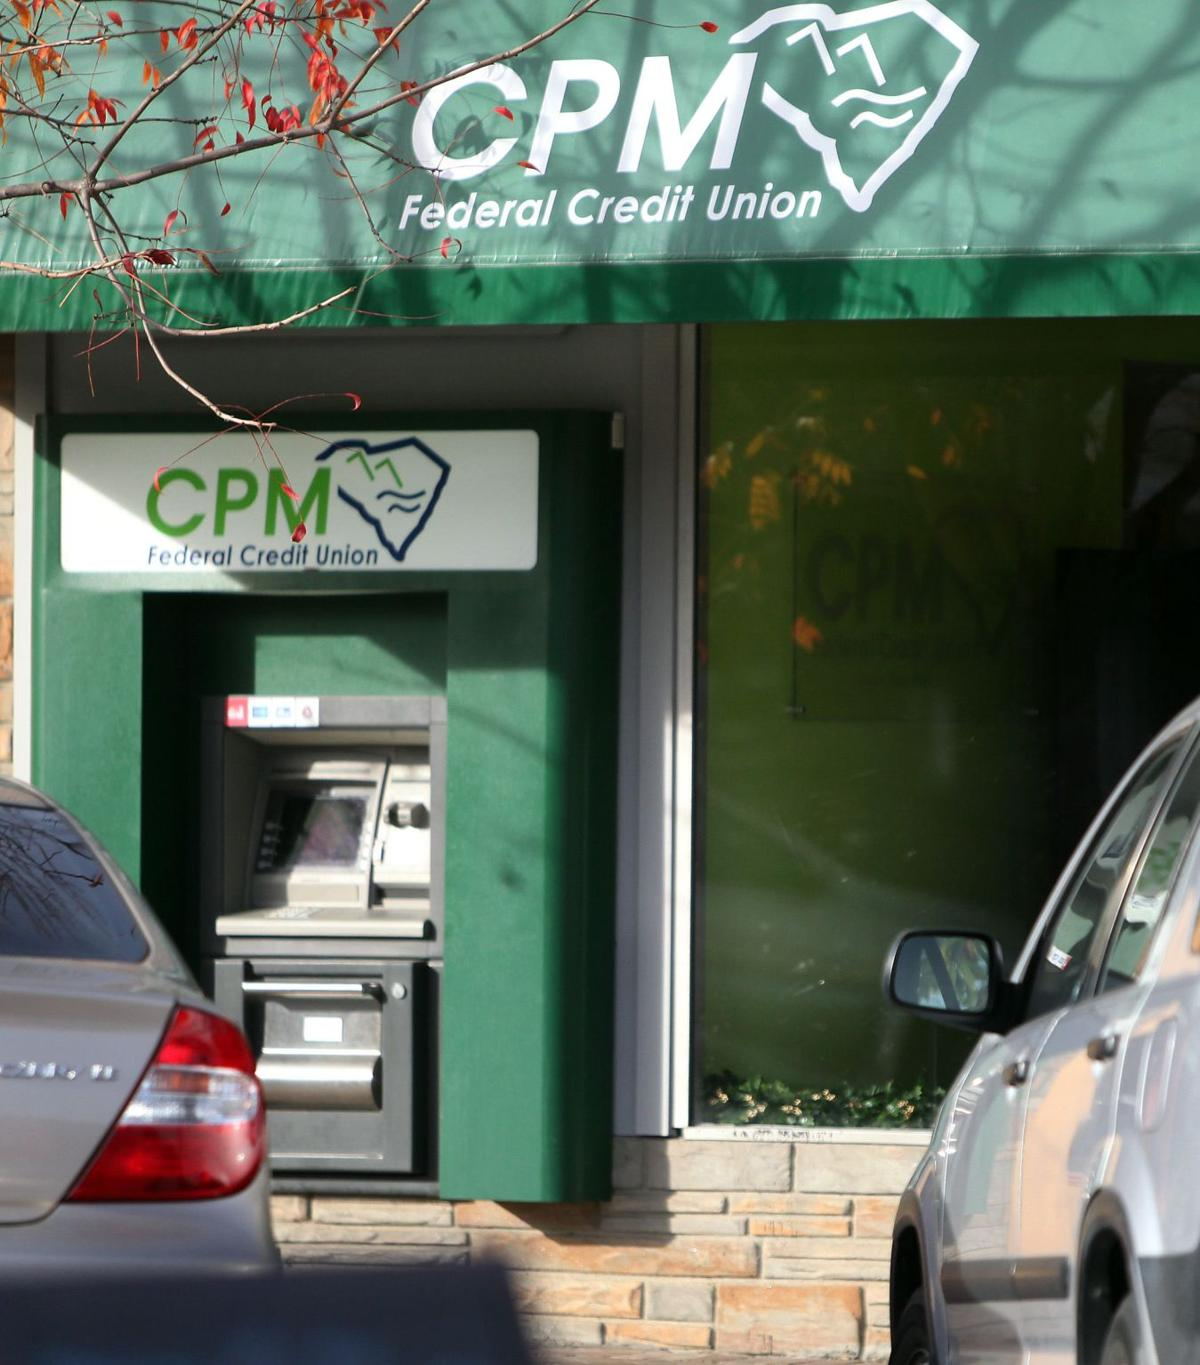 CPM credit union closing 3 branches, including 1 in North Charleston